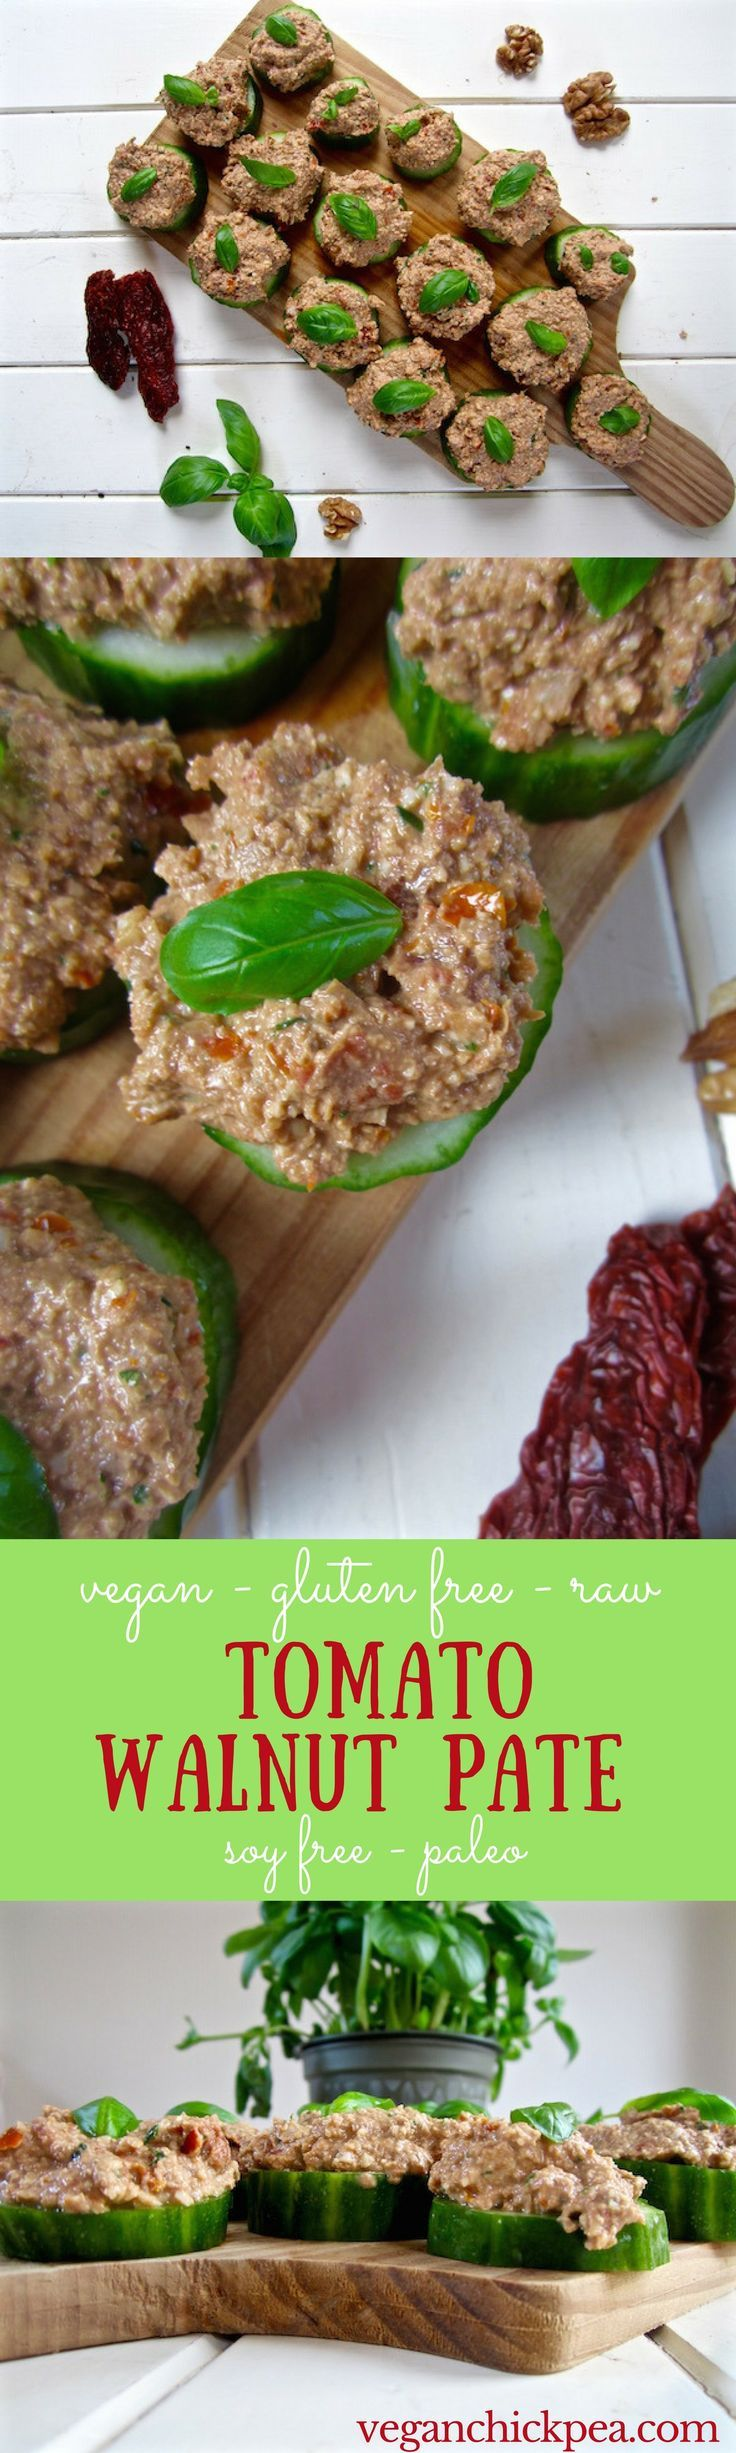 Tomato Walnut Pate recipe - an easy vegan appetizer, especially in the summer! Serve on cucumbers or crackers. {raw, paleo, soy & gluten free} | http://veganchickpea.com